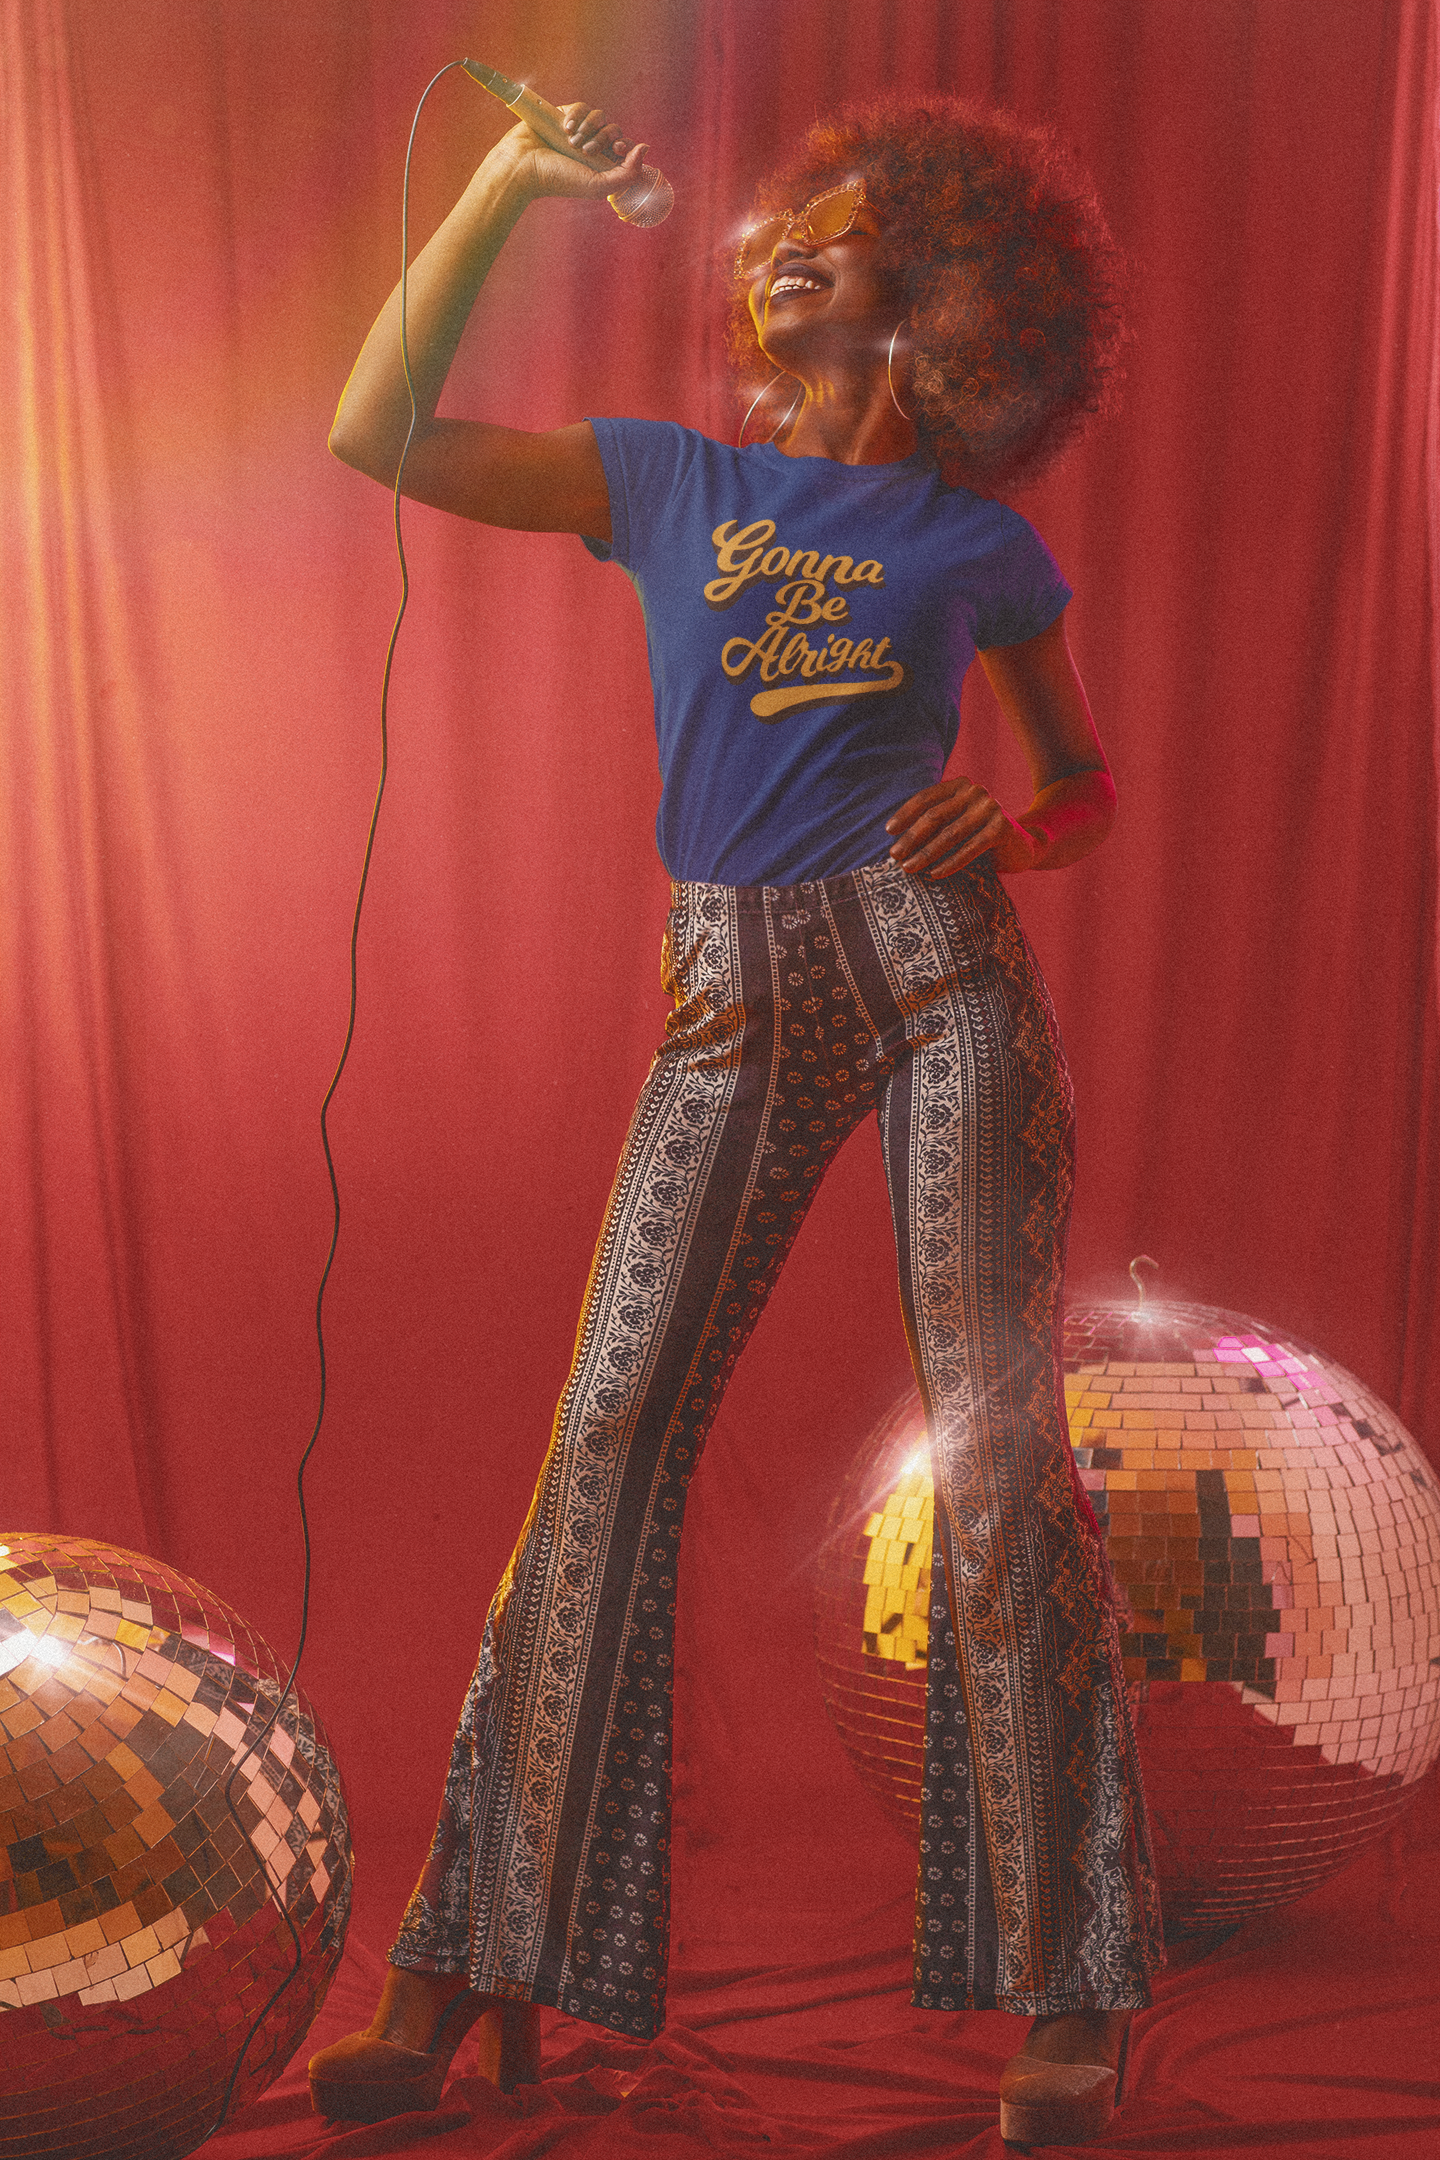 t-shirt-mockup-featuring-a-female-singer-in-a-70s-styled-setting-m10142